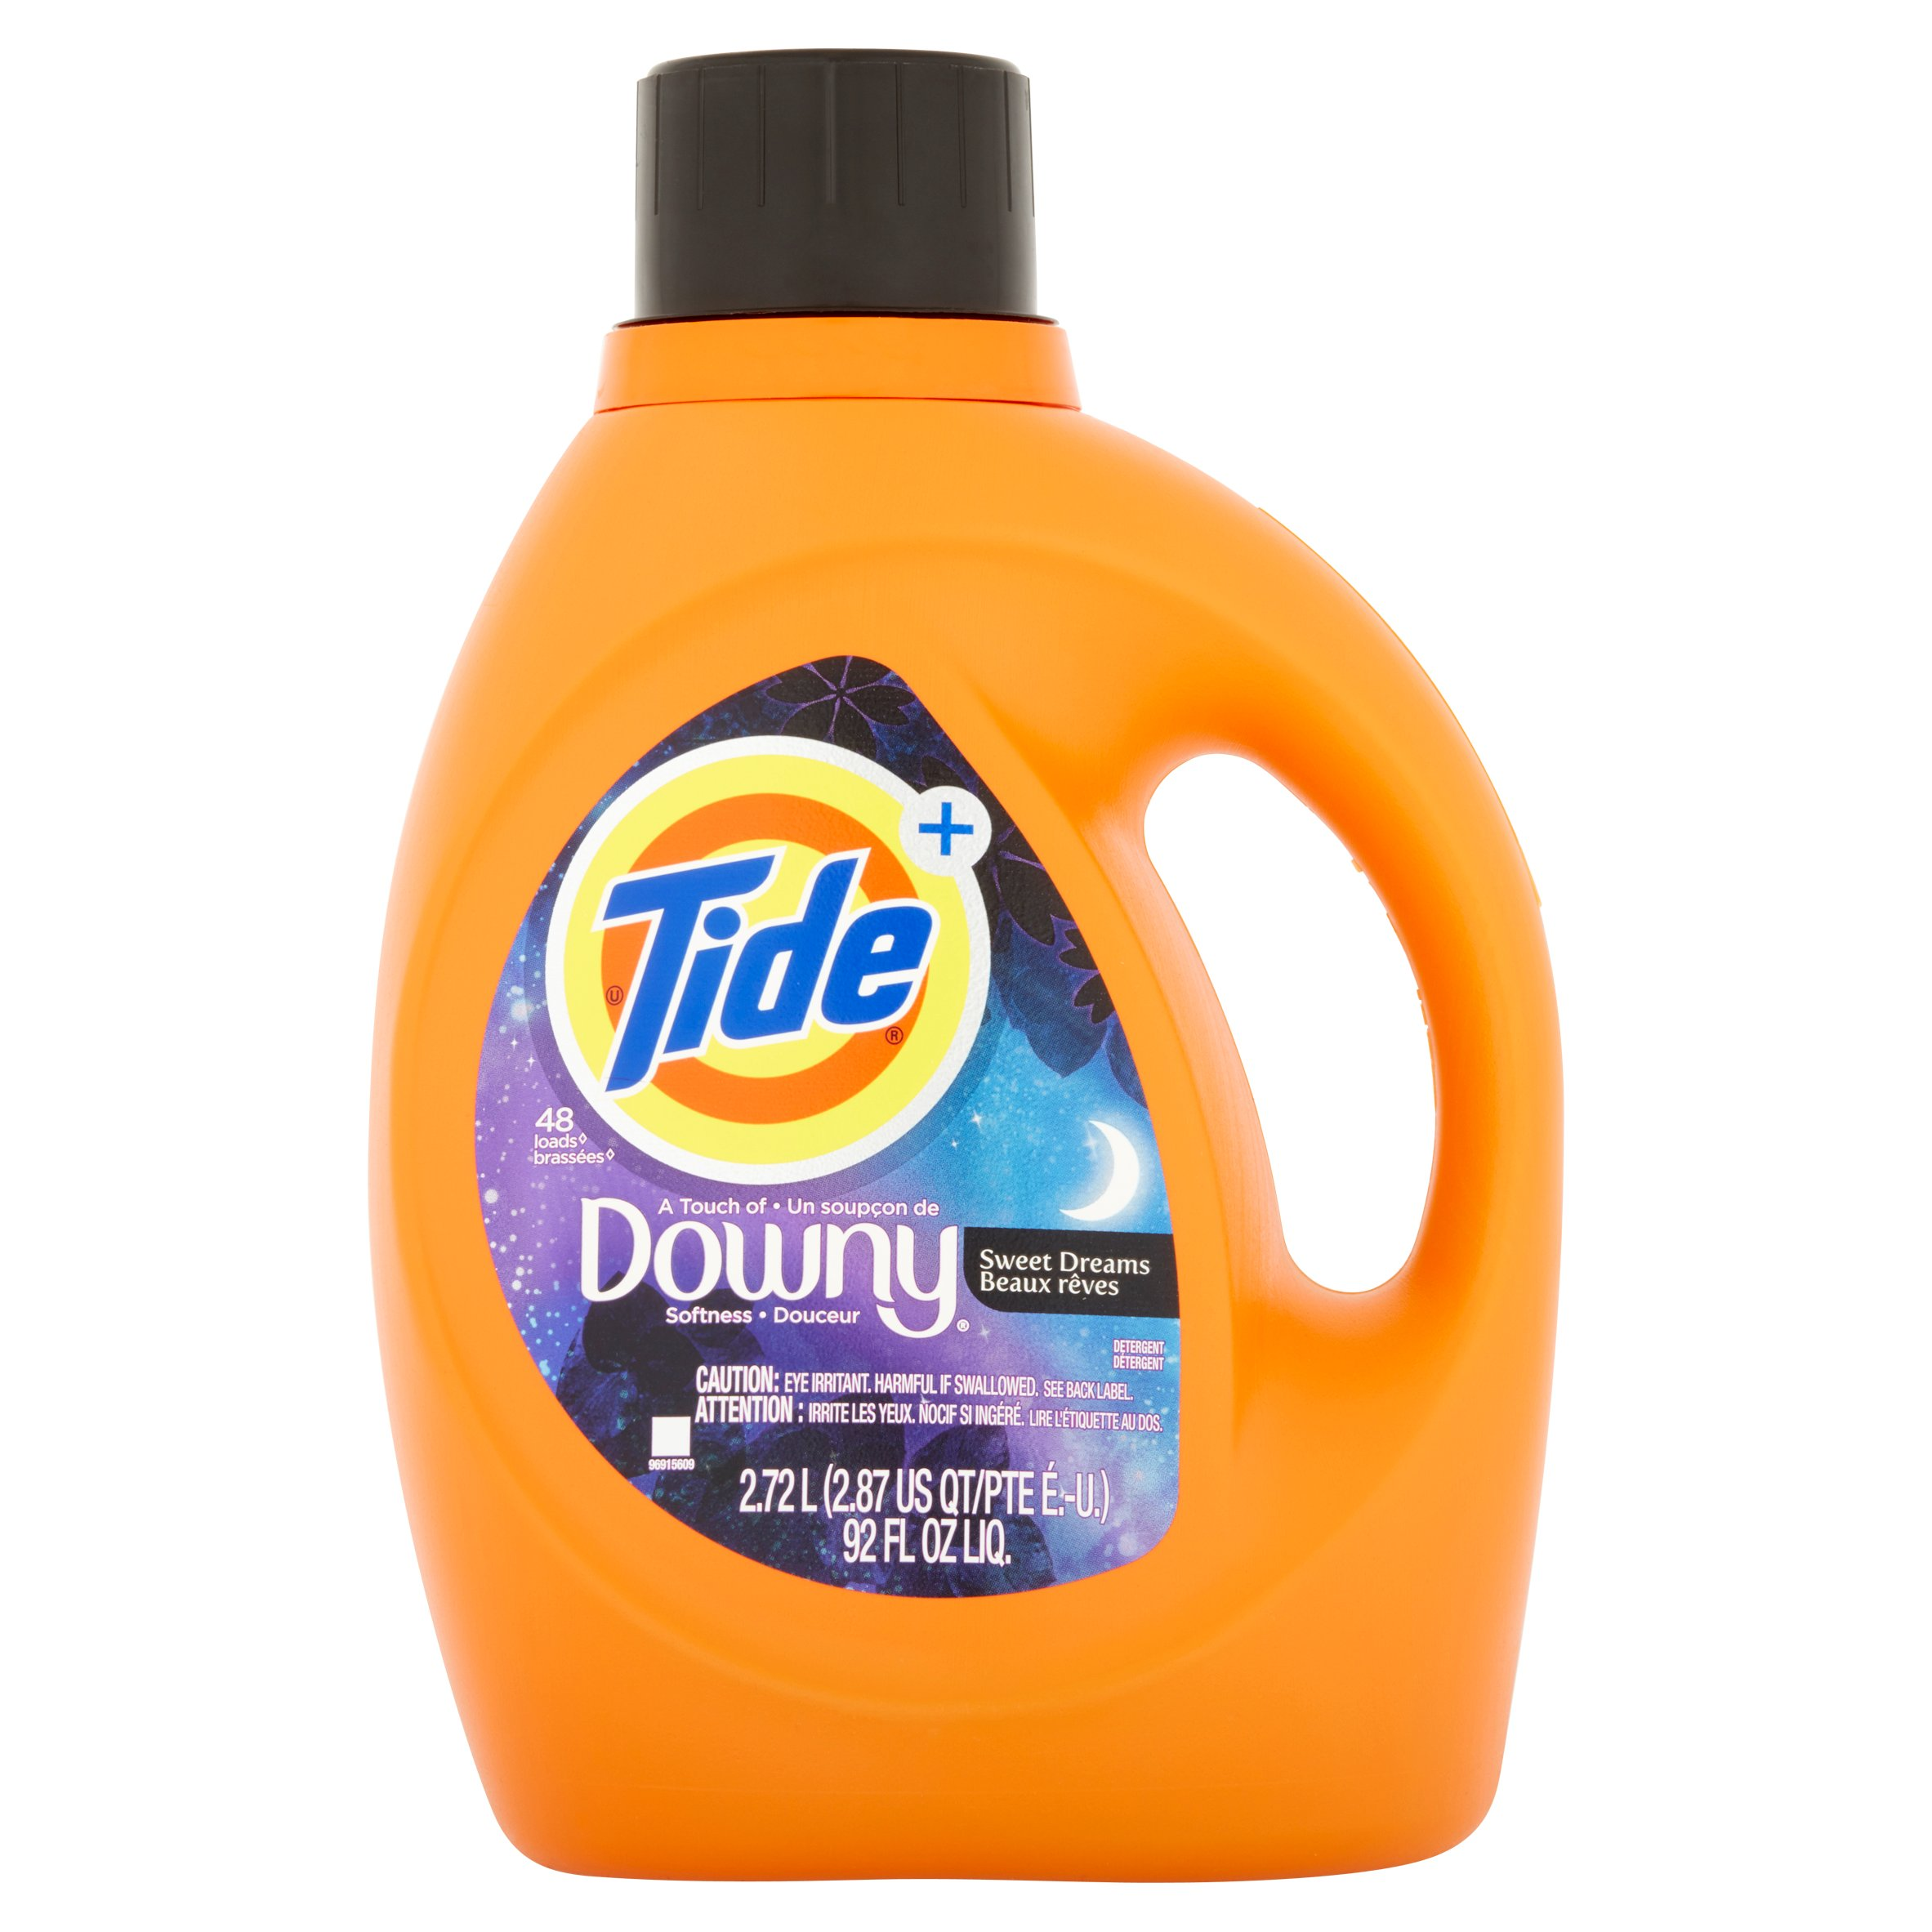 Tide a Touch of Downy Softness Sweet Dreams Detergent, 48 loads, 92 fl oz